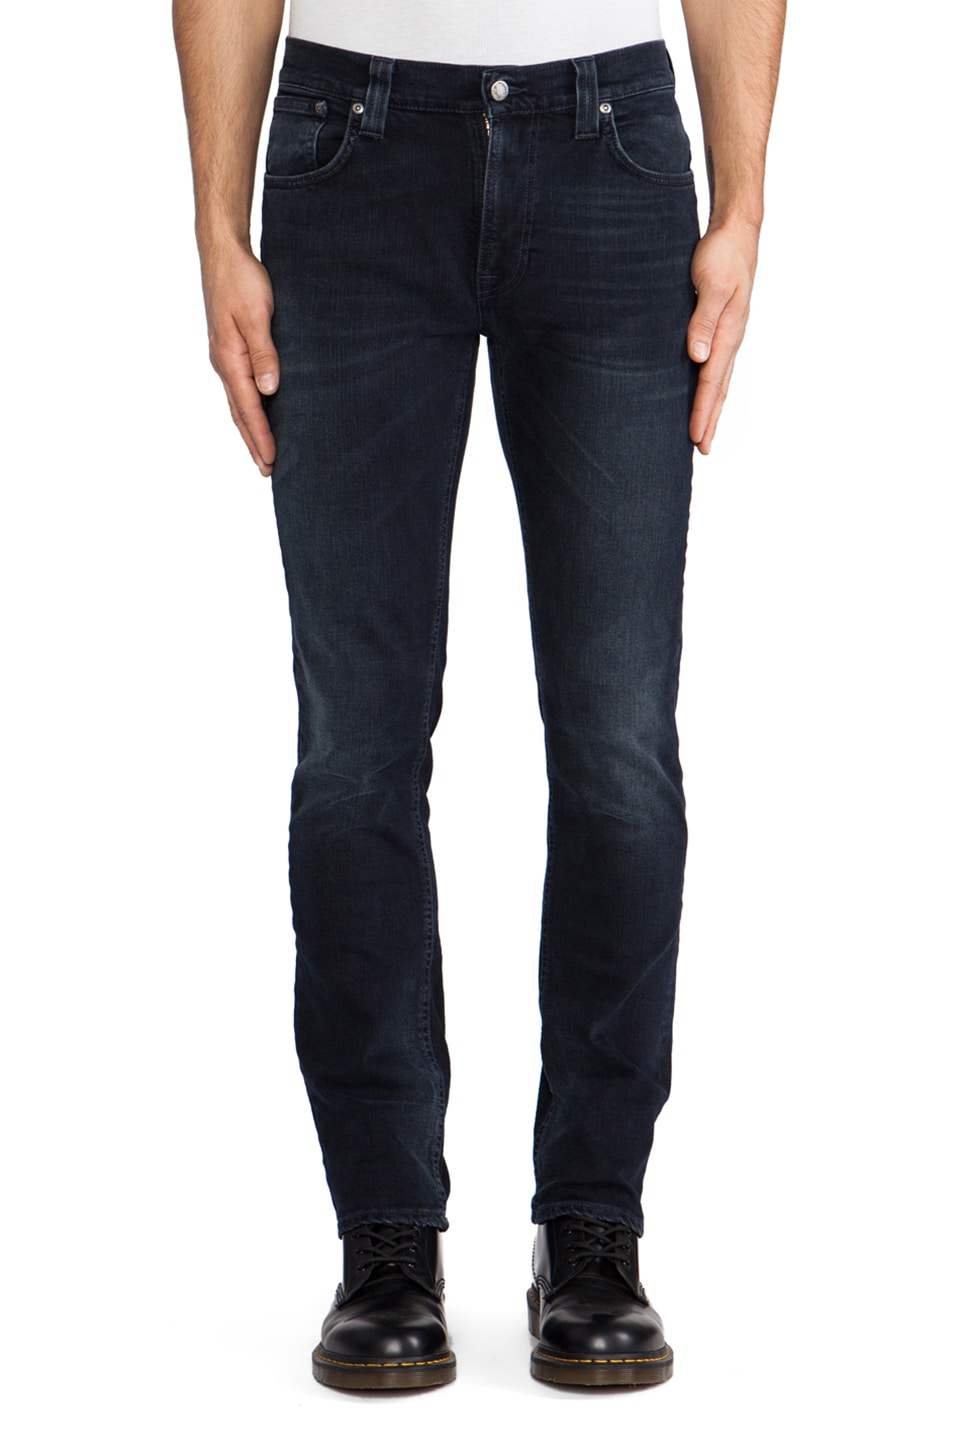 Nudie Jeans Thin Finn in Org. Blue Strike